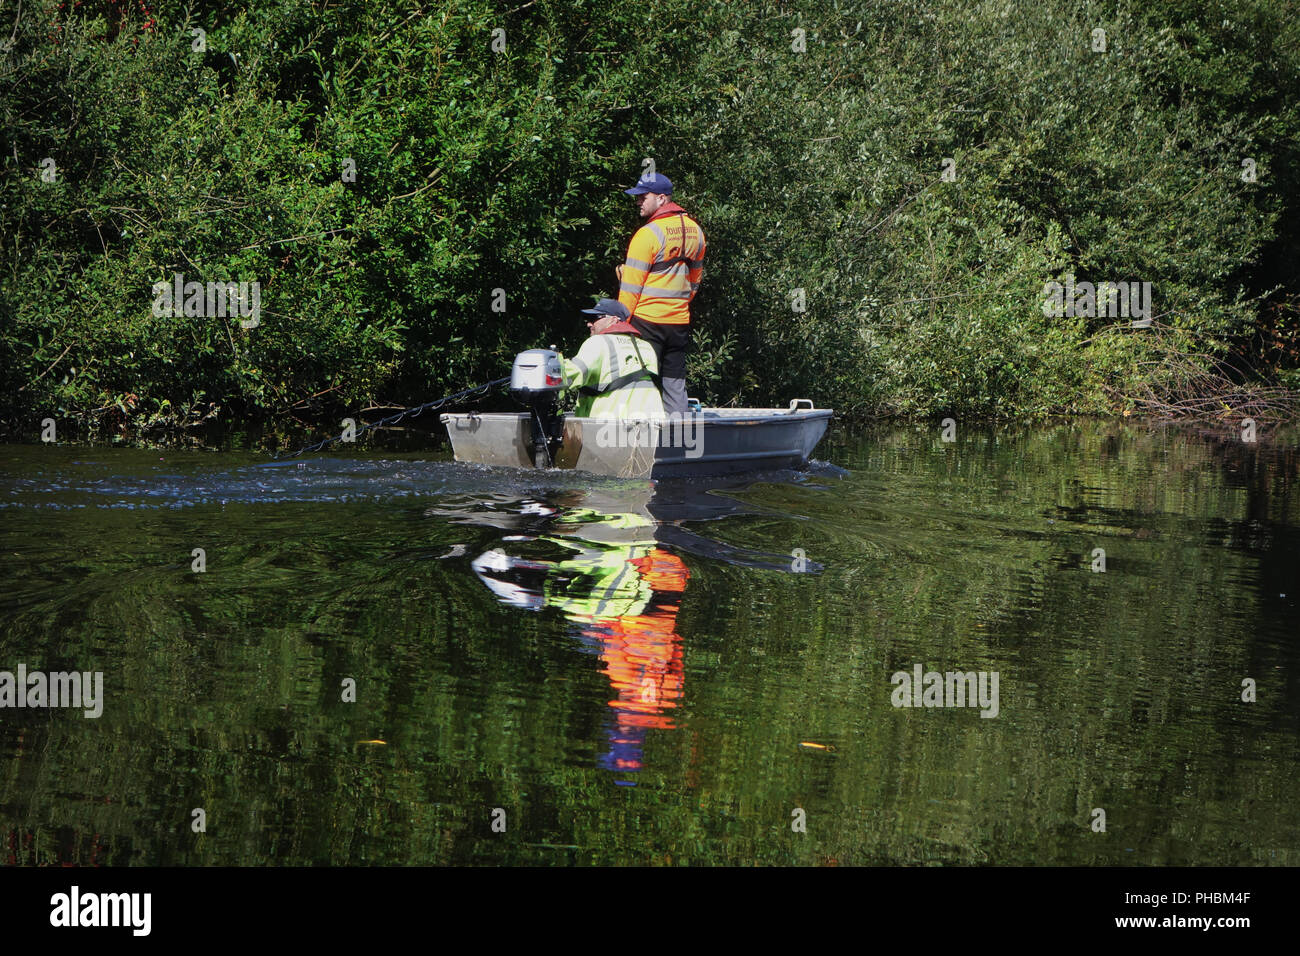 2 staff from The Canal and River Trust in the official boat spraying chemicals on weeds for a riverbank clean-up on the edge of a river. - Stock Image